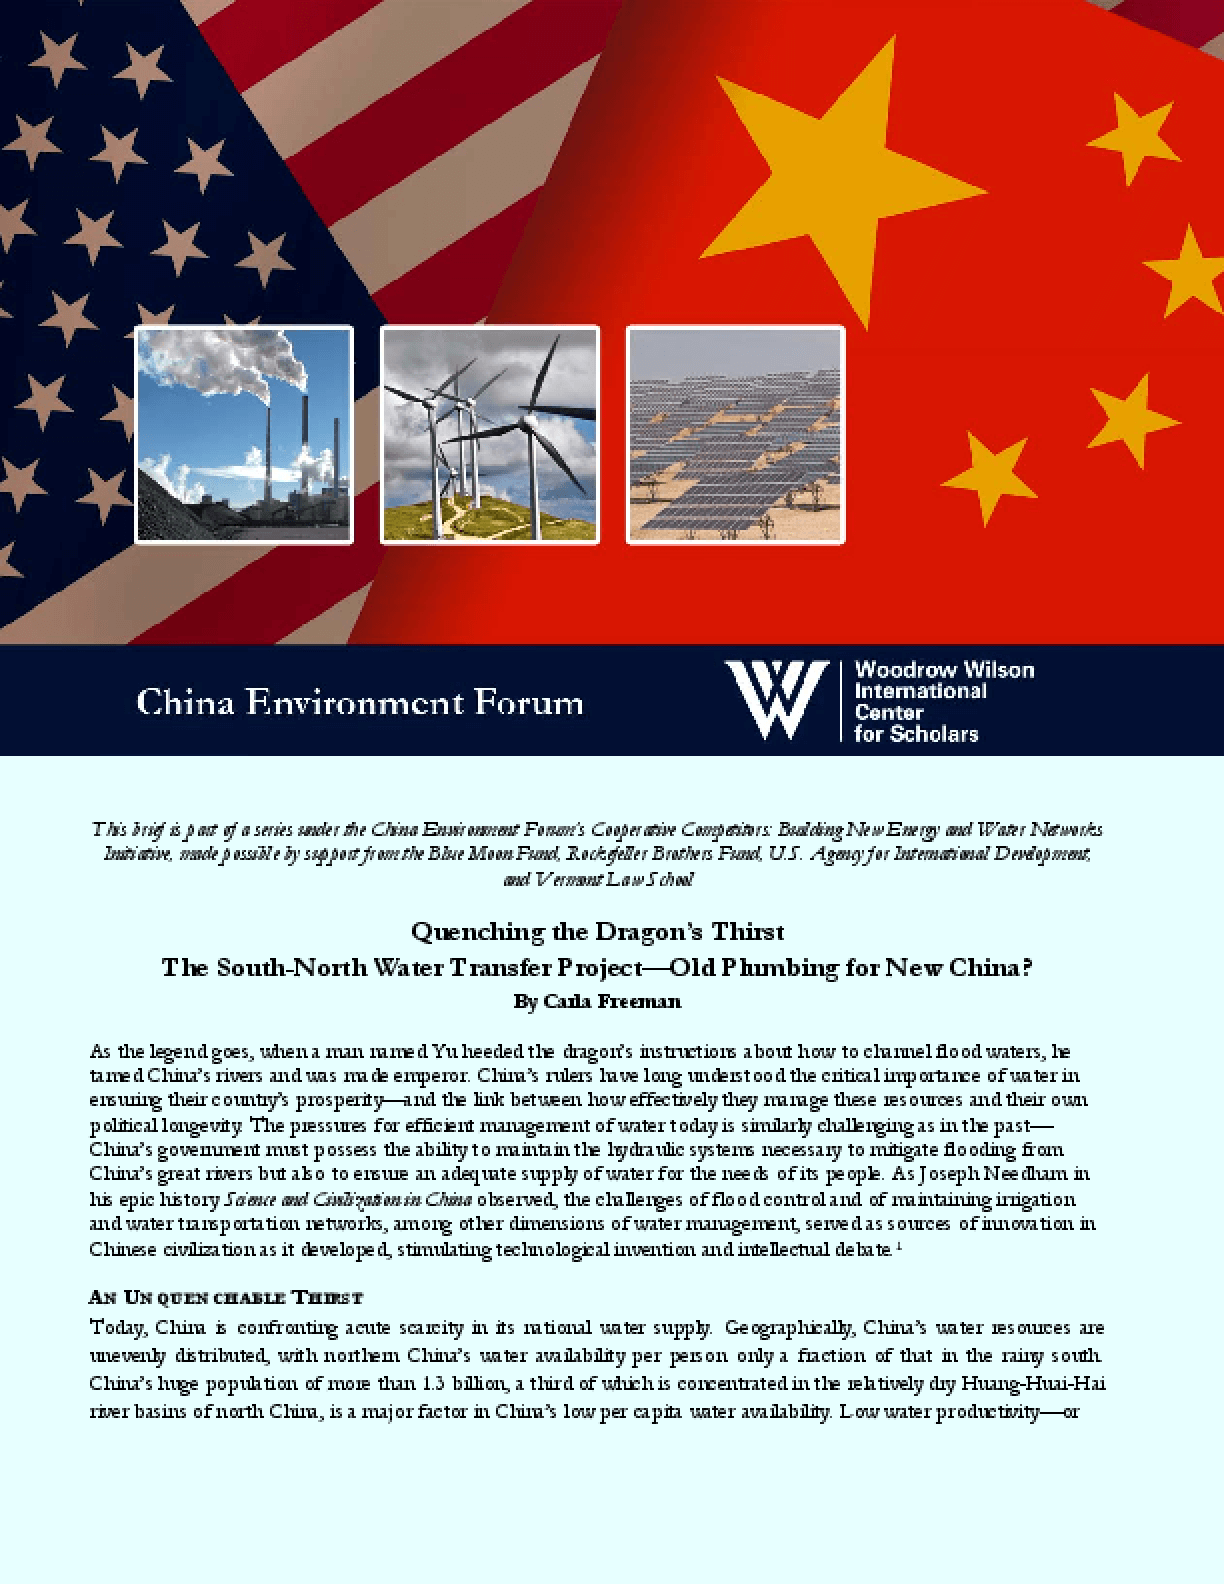 Quenching the Dragon's Thirst: The South-North Water Transfer Project -- Old Plumbing for New China?